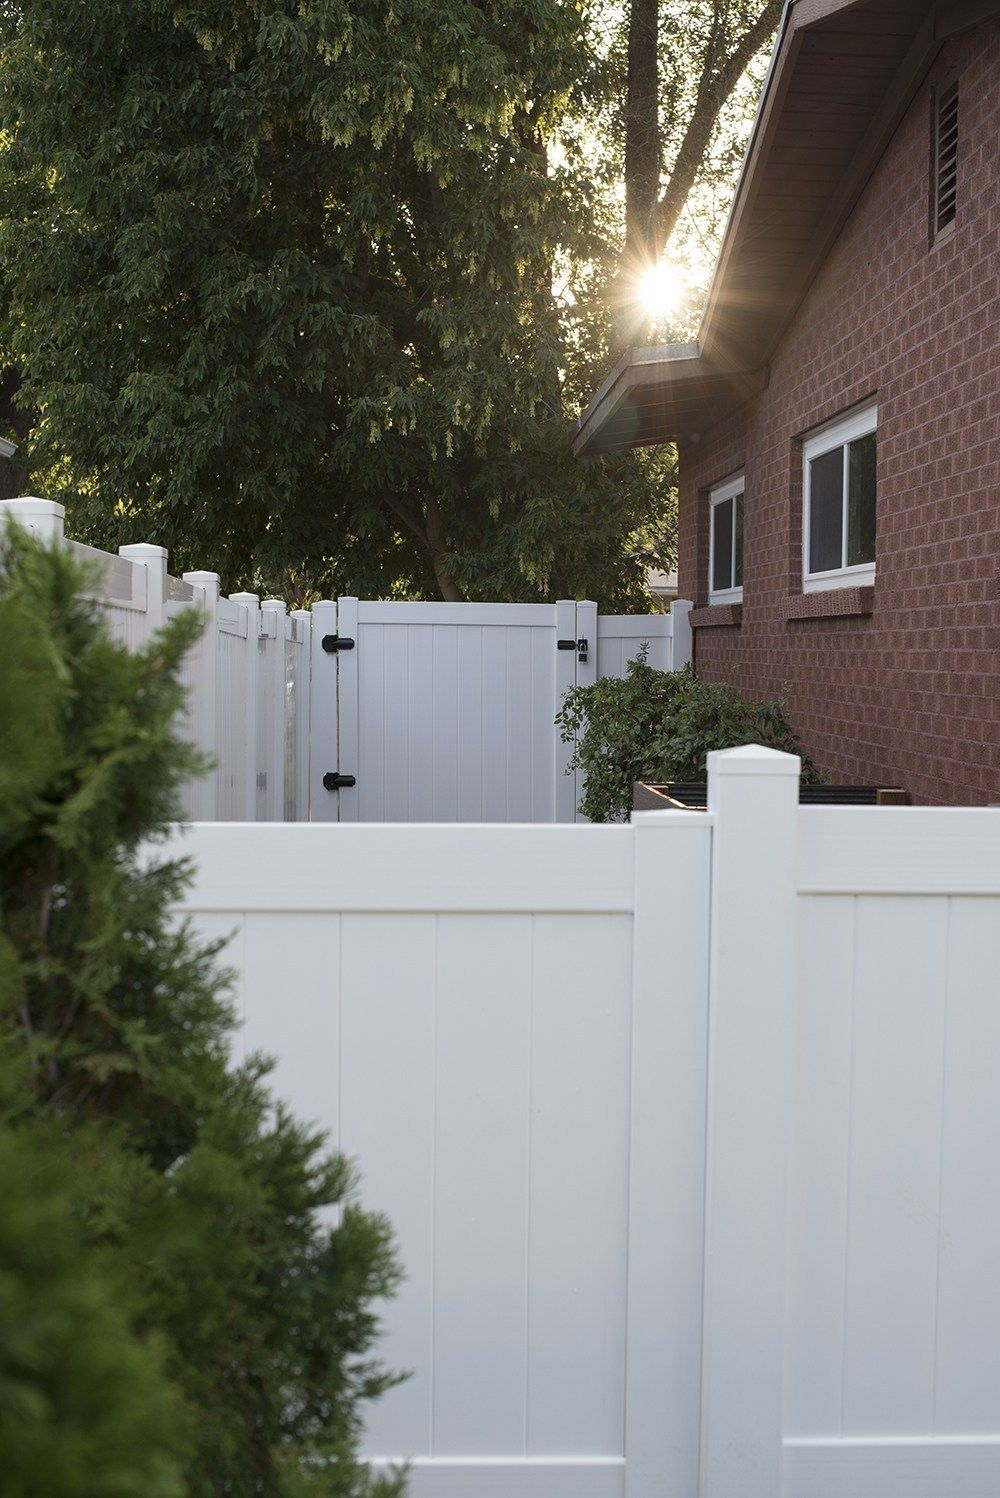 3 Day Project : Transforming Our Side Yard #sideyards